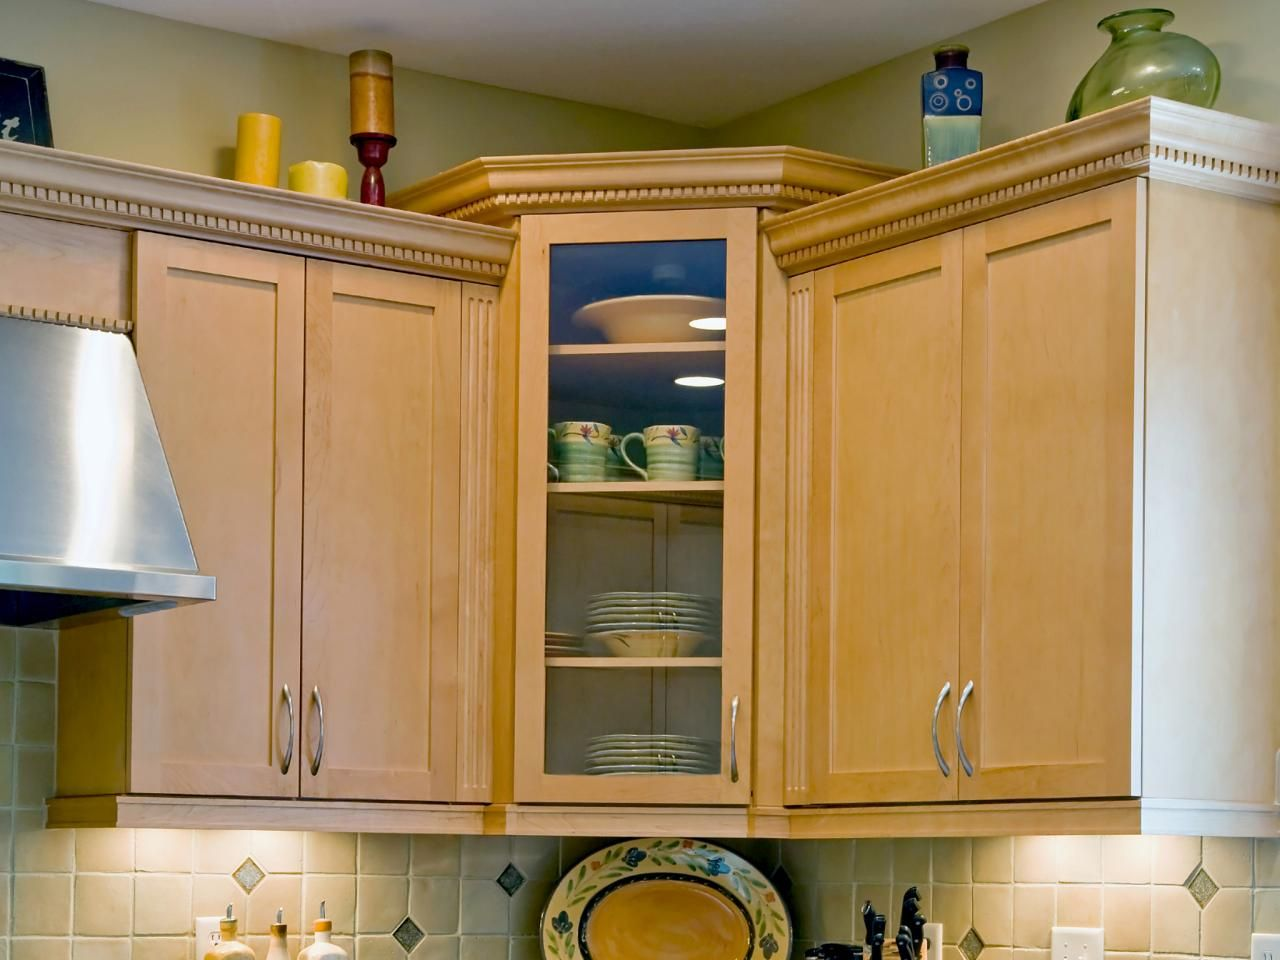 A Tight Shot Of Light Colored Wood Corner Kitchen Cabinets With Dishes  Stored Inside.